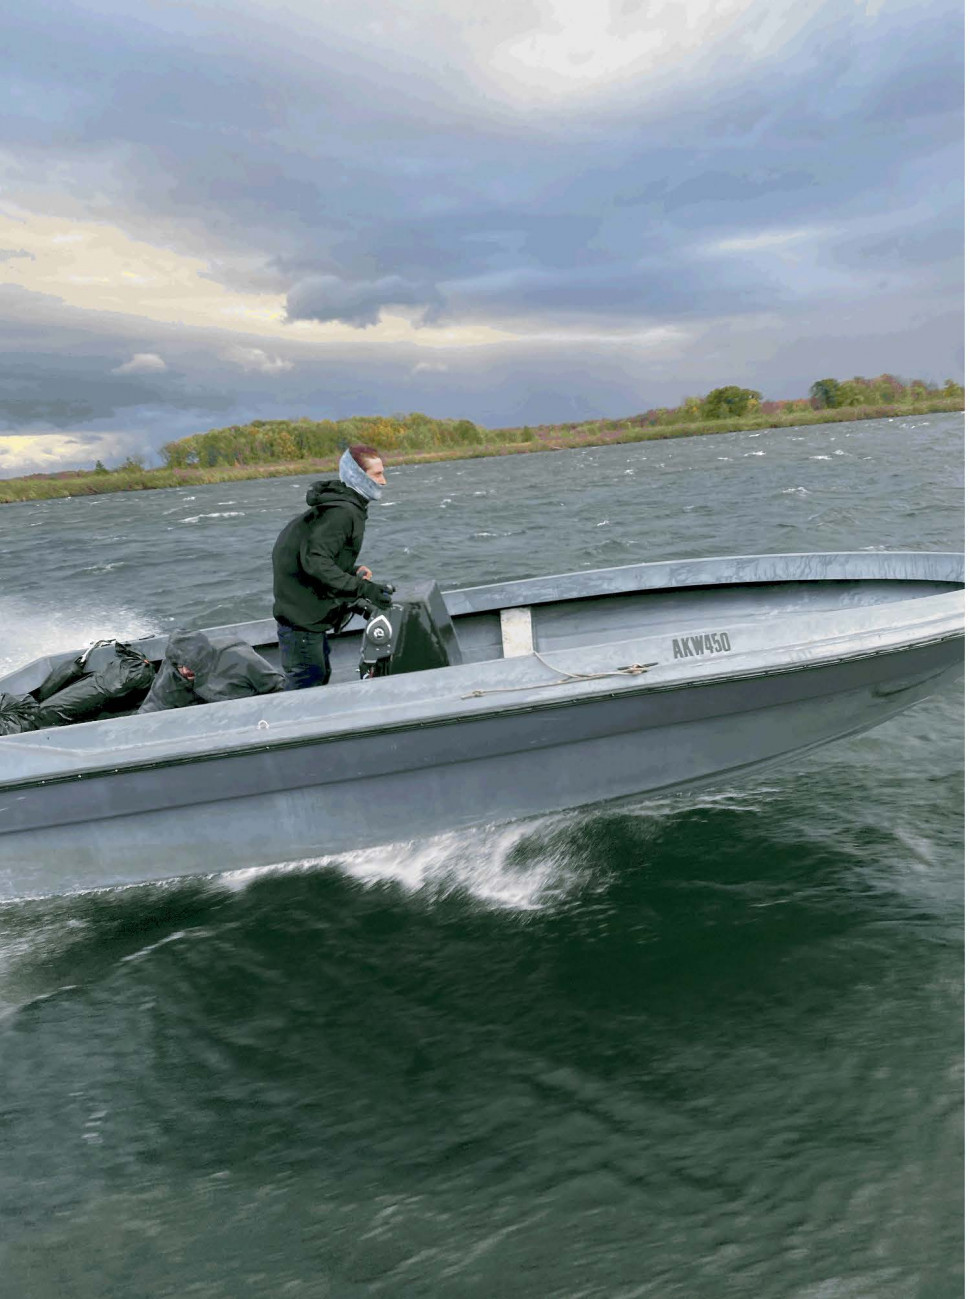 Suspects flee RCMP in boat